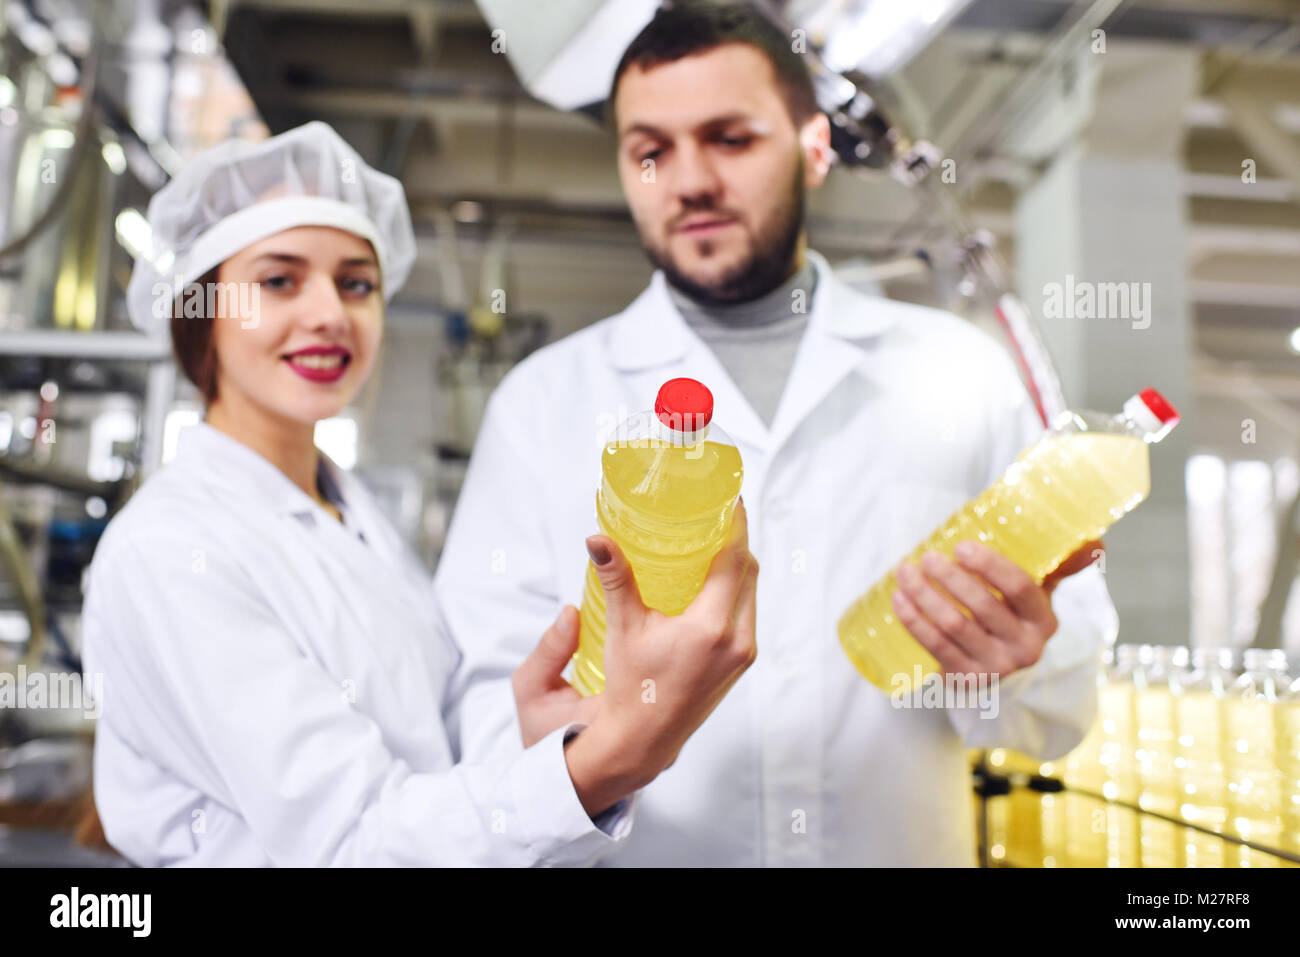 line for food production of sunflower oil - Stock Image